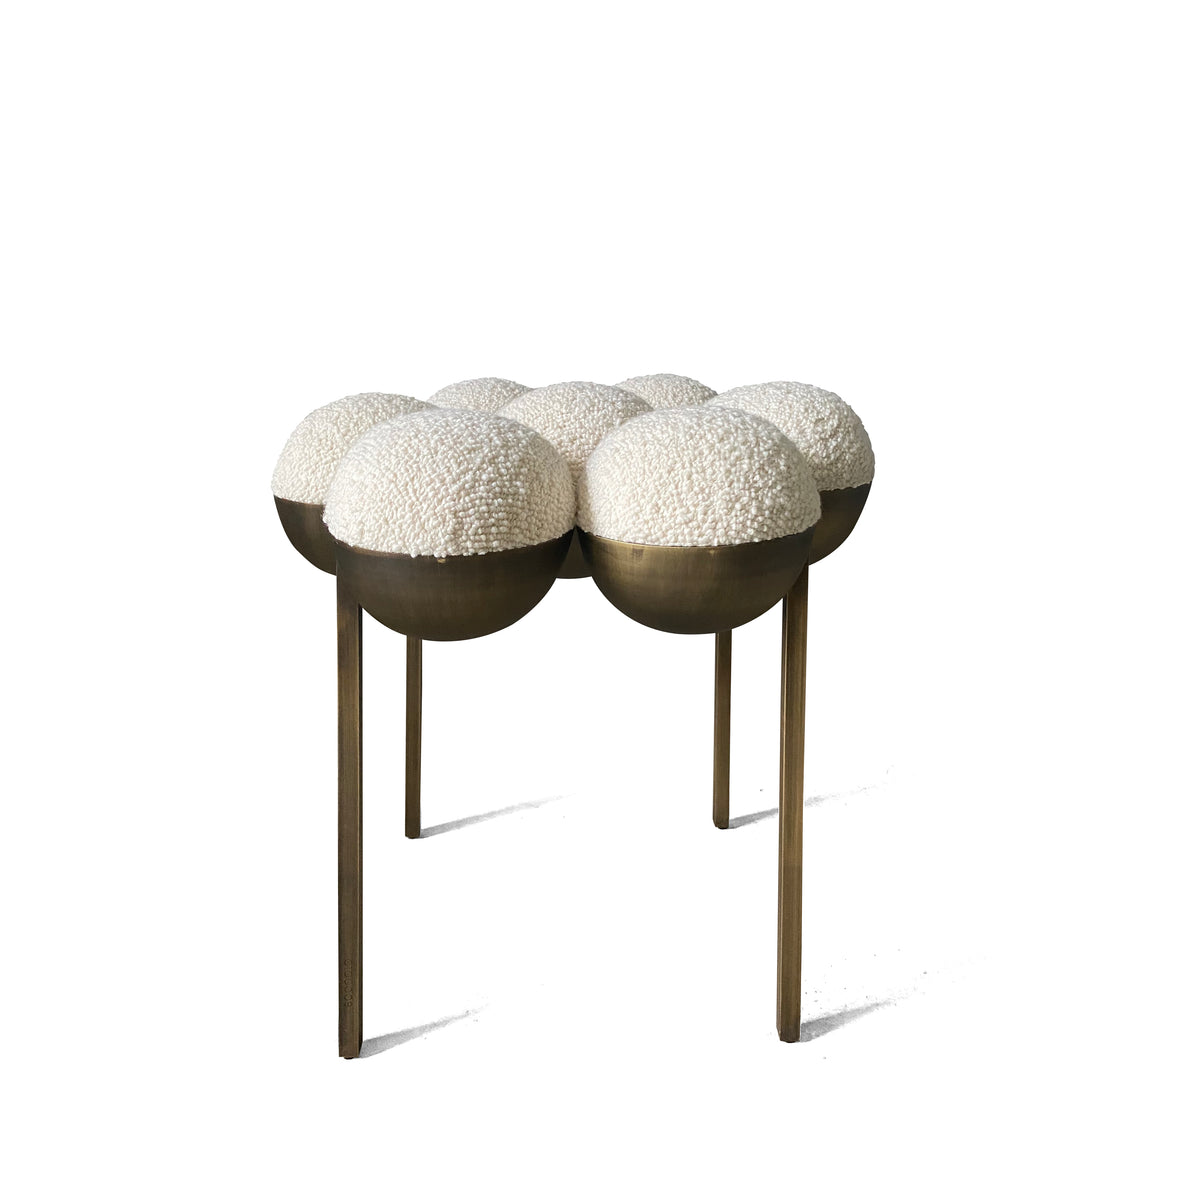 SATURN POUFFE SMALL - DARK OXIDISED BRASS, IVORY BOUCLE